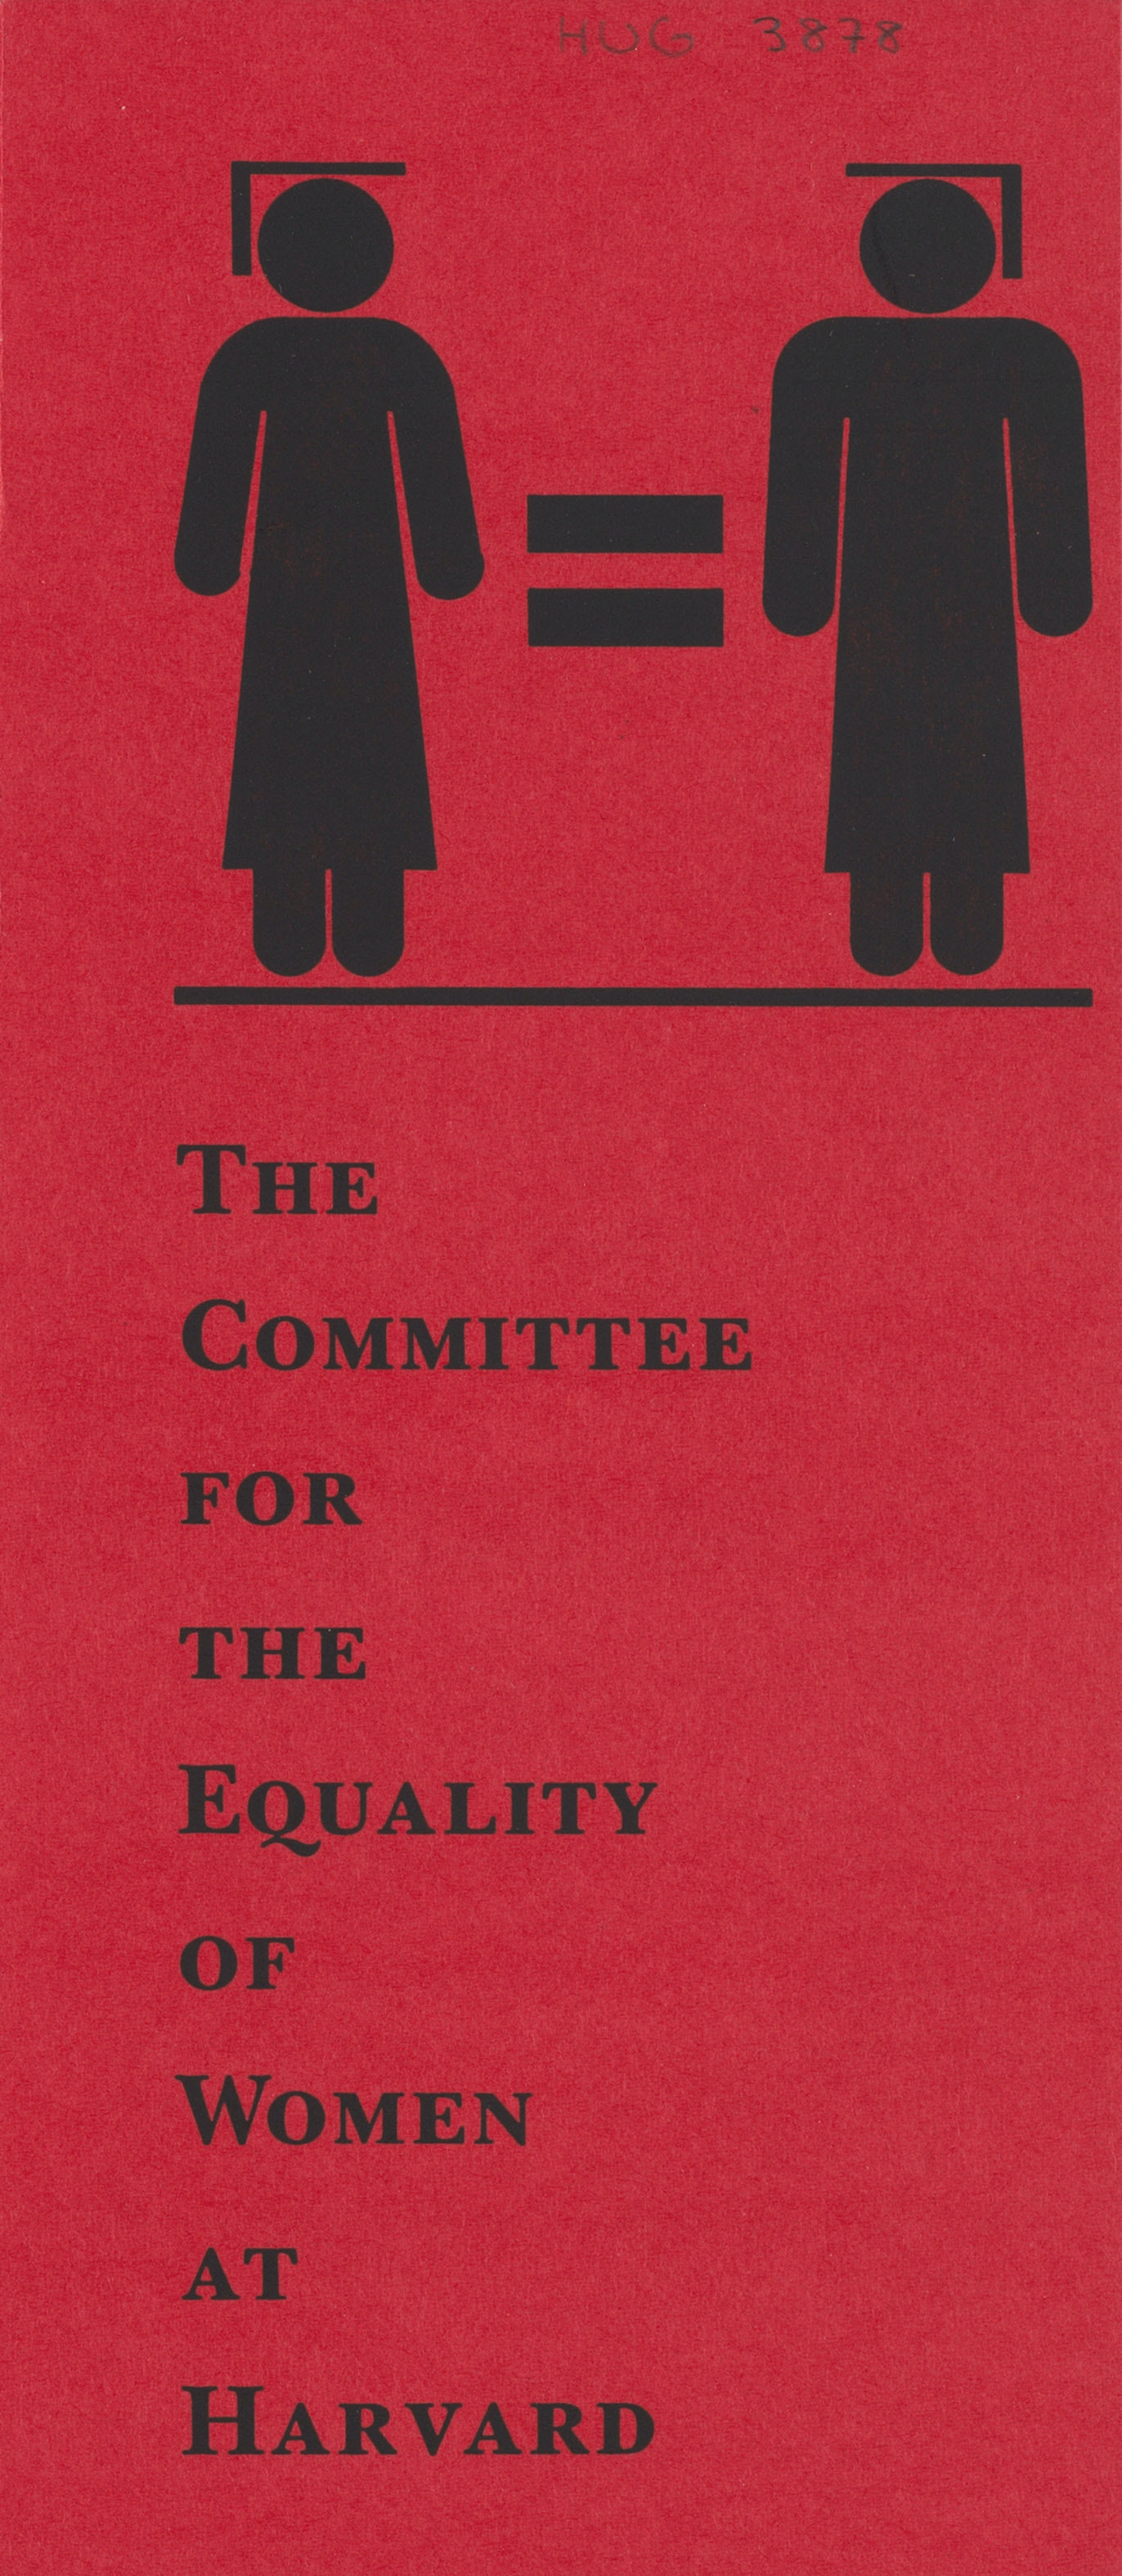 Committee for the Equality of Women Brochure